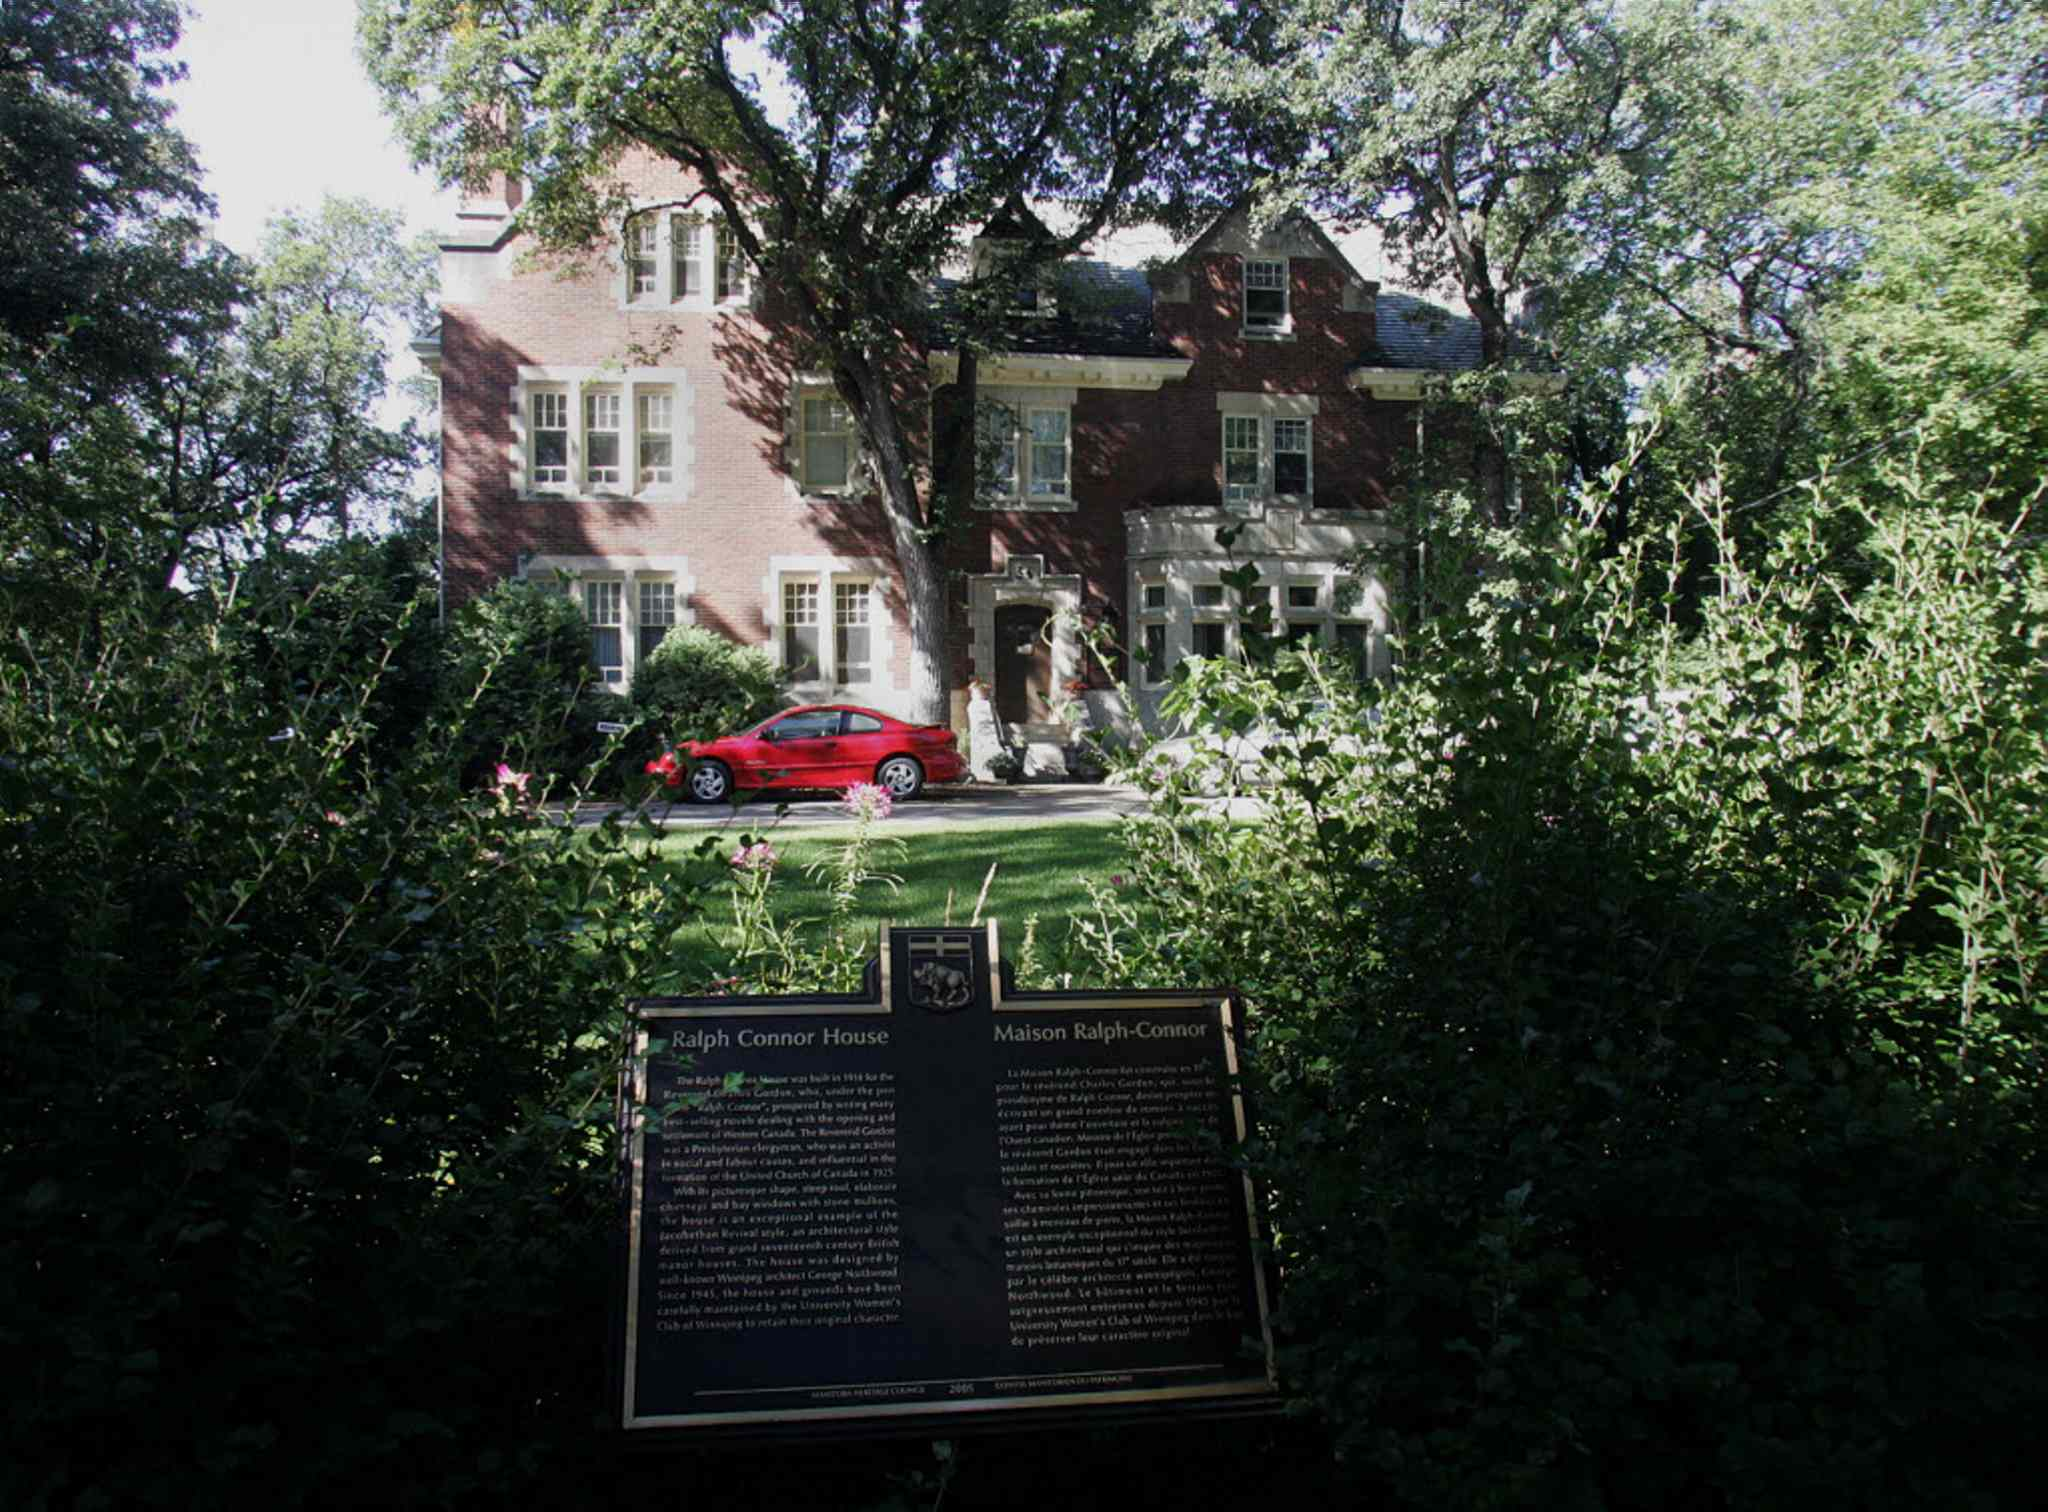 Ralph Connor House at 54 Westgate is one of the seven houses that will be included in the Heritage House and Garden Tour of Armstrong's Point on Sun., Sept. 7.